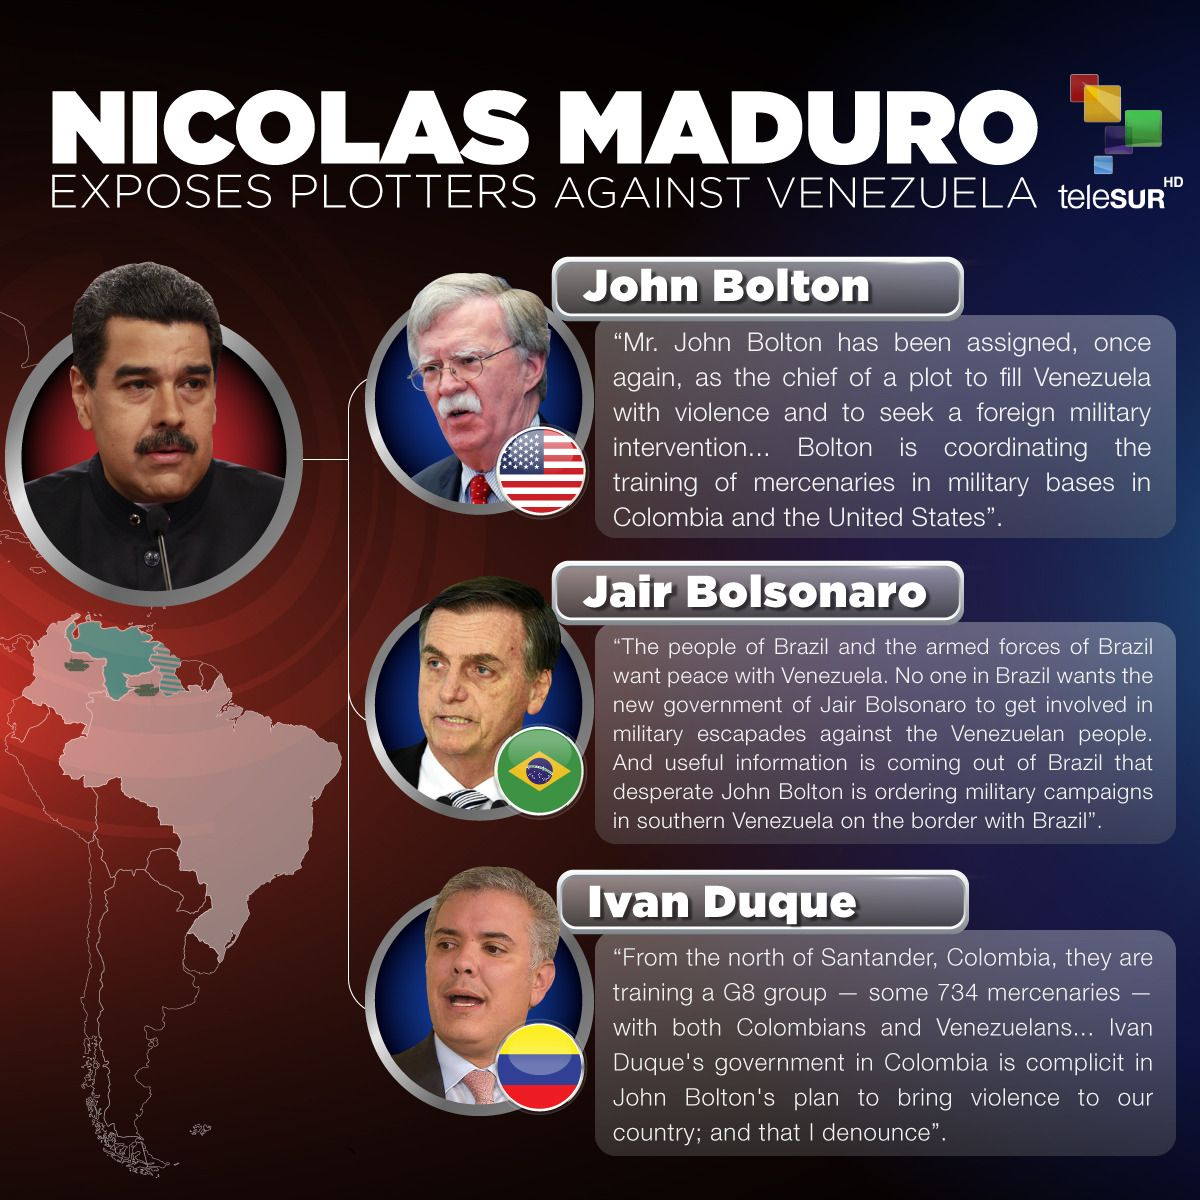 #NicolasMaduro denounces the right-wing governments that continuously undermine and attack #Venezuela's democracy.